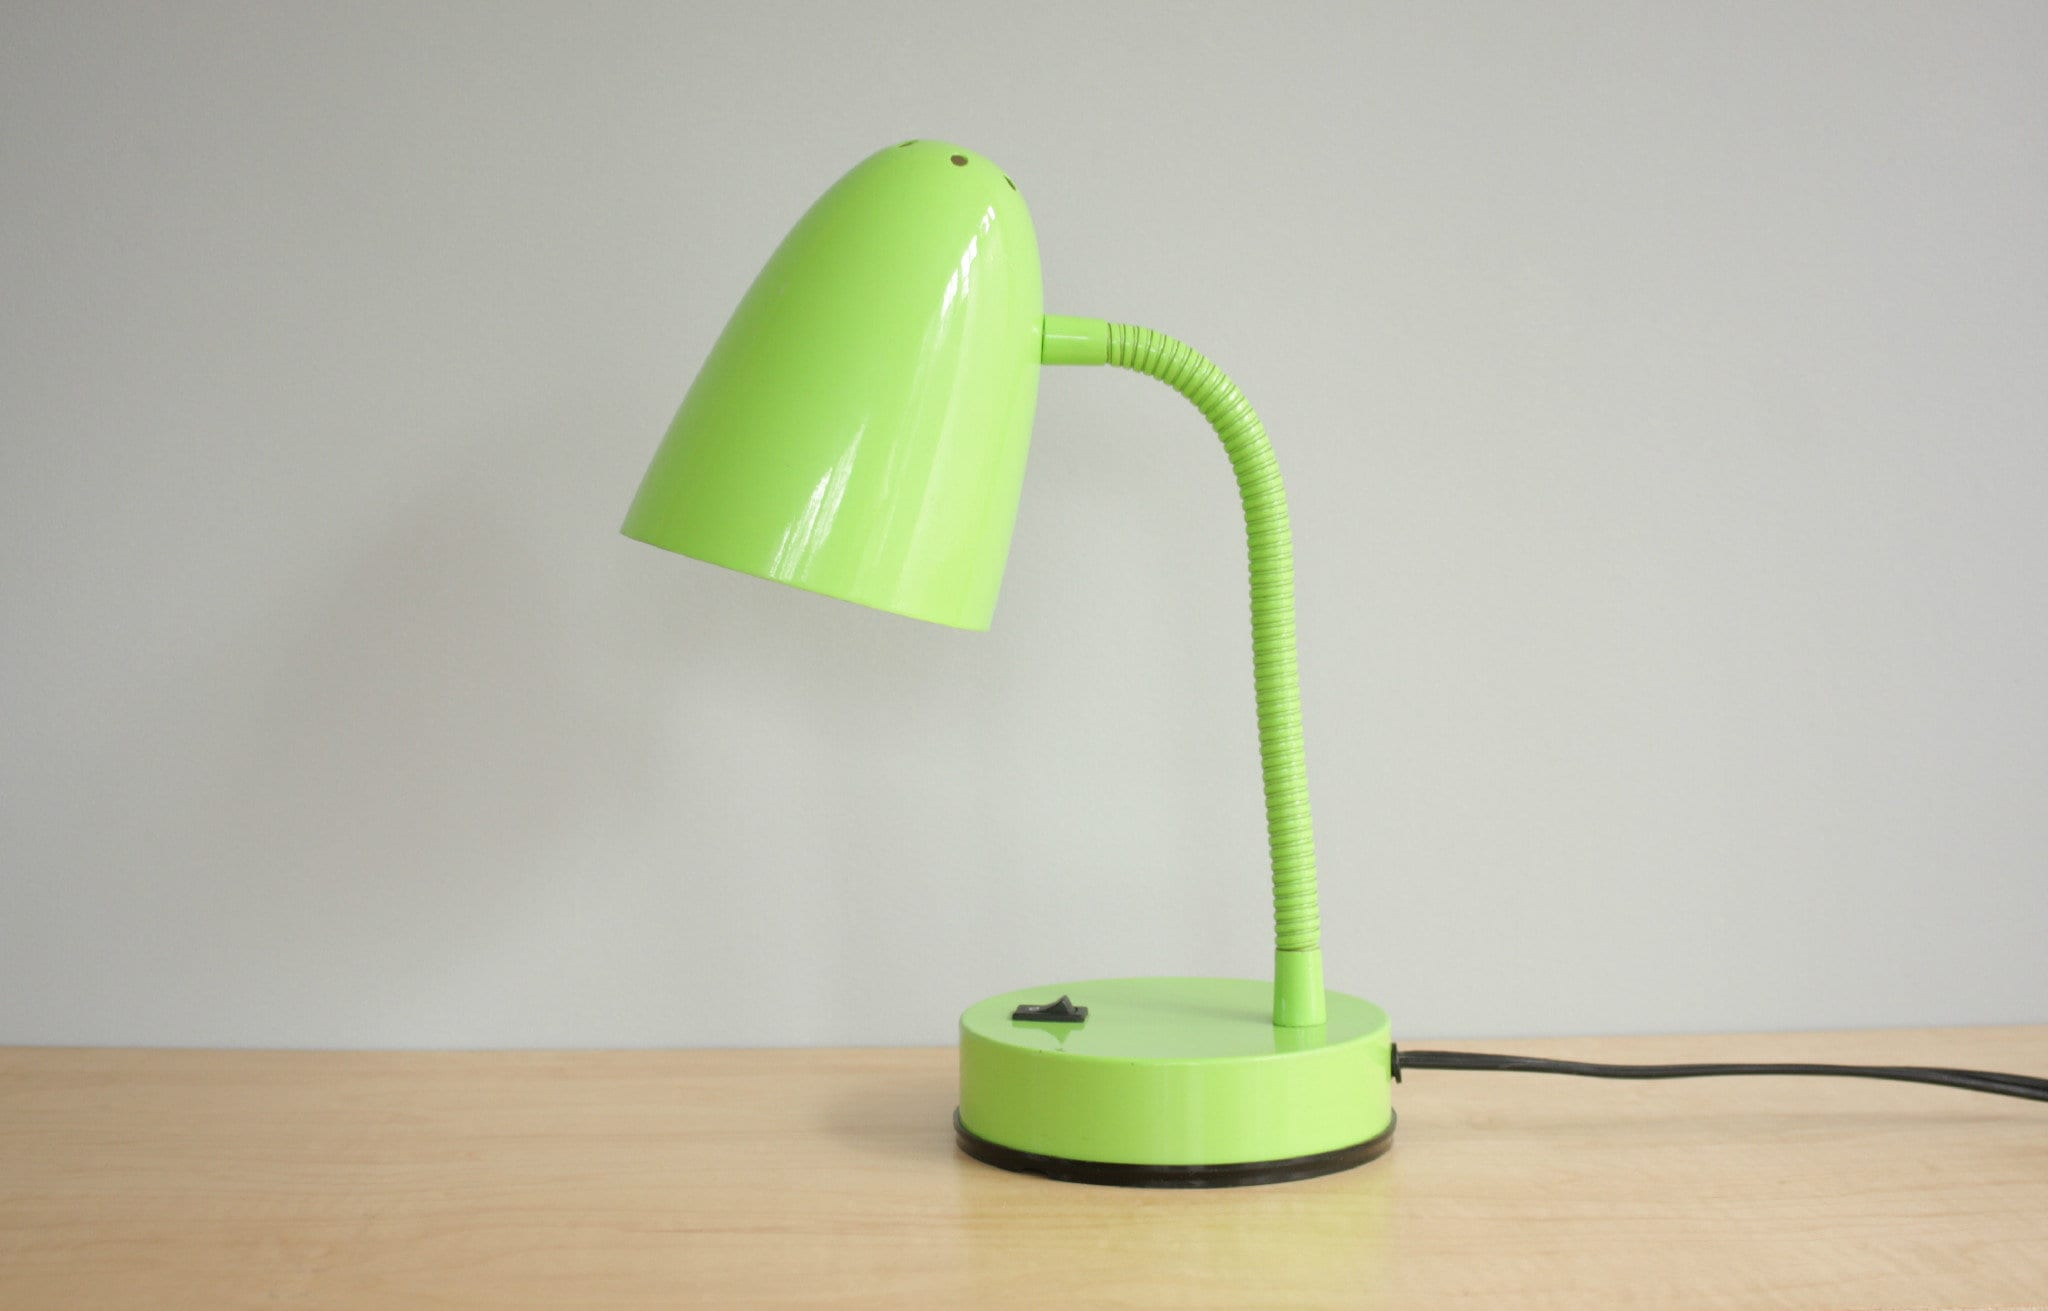 Funky Desk Lamps Bright Green Desk Lamp 80s Retro Bedside Table Lamp Mod Green Task Lamp Funky Teen Desk Lamp Child S Room Lamp Vintage Desk Lamp